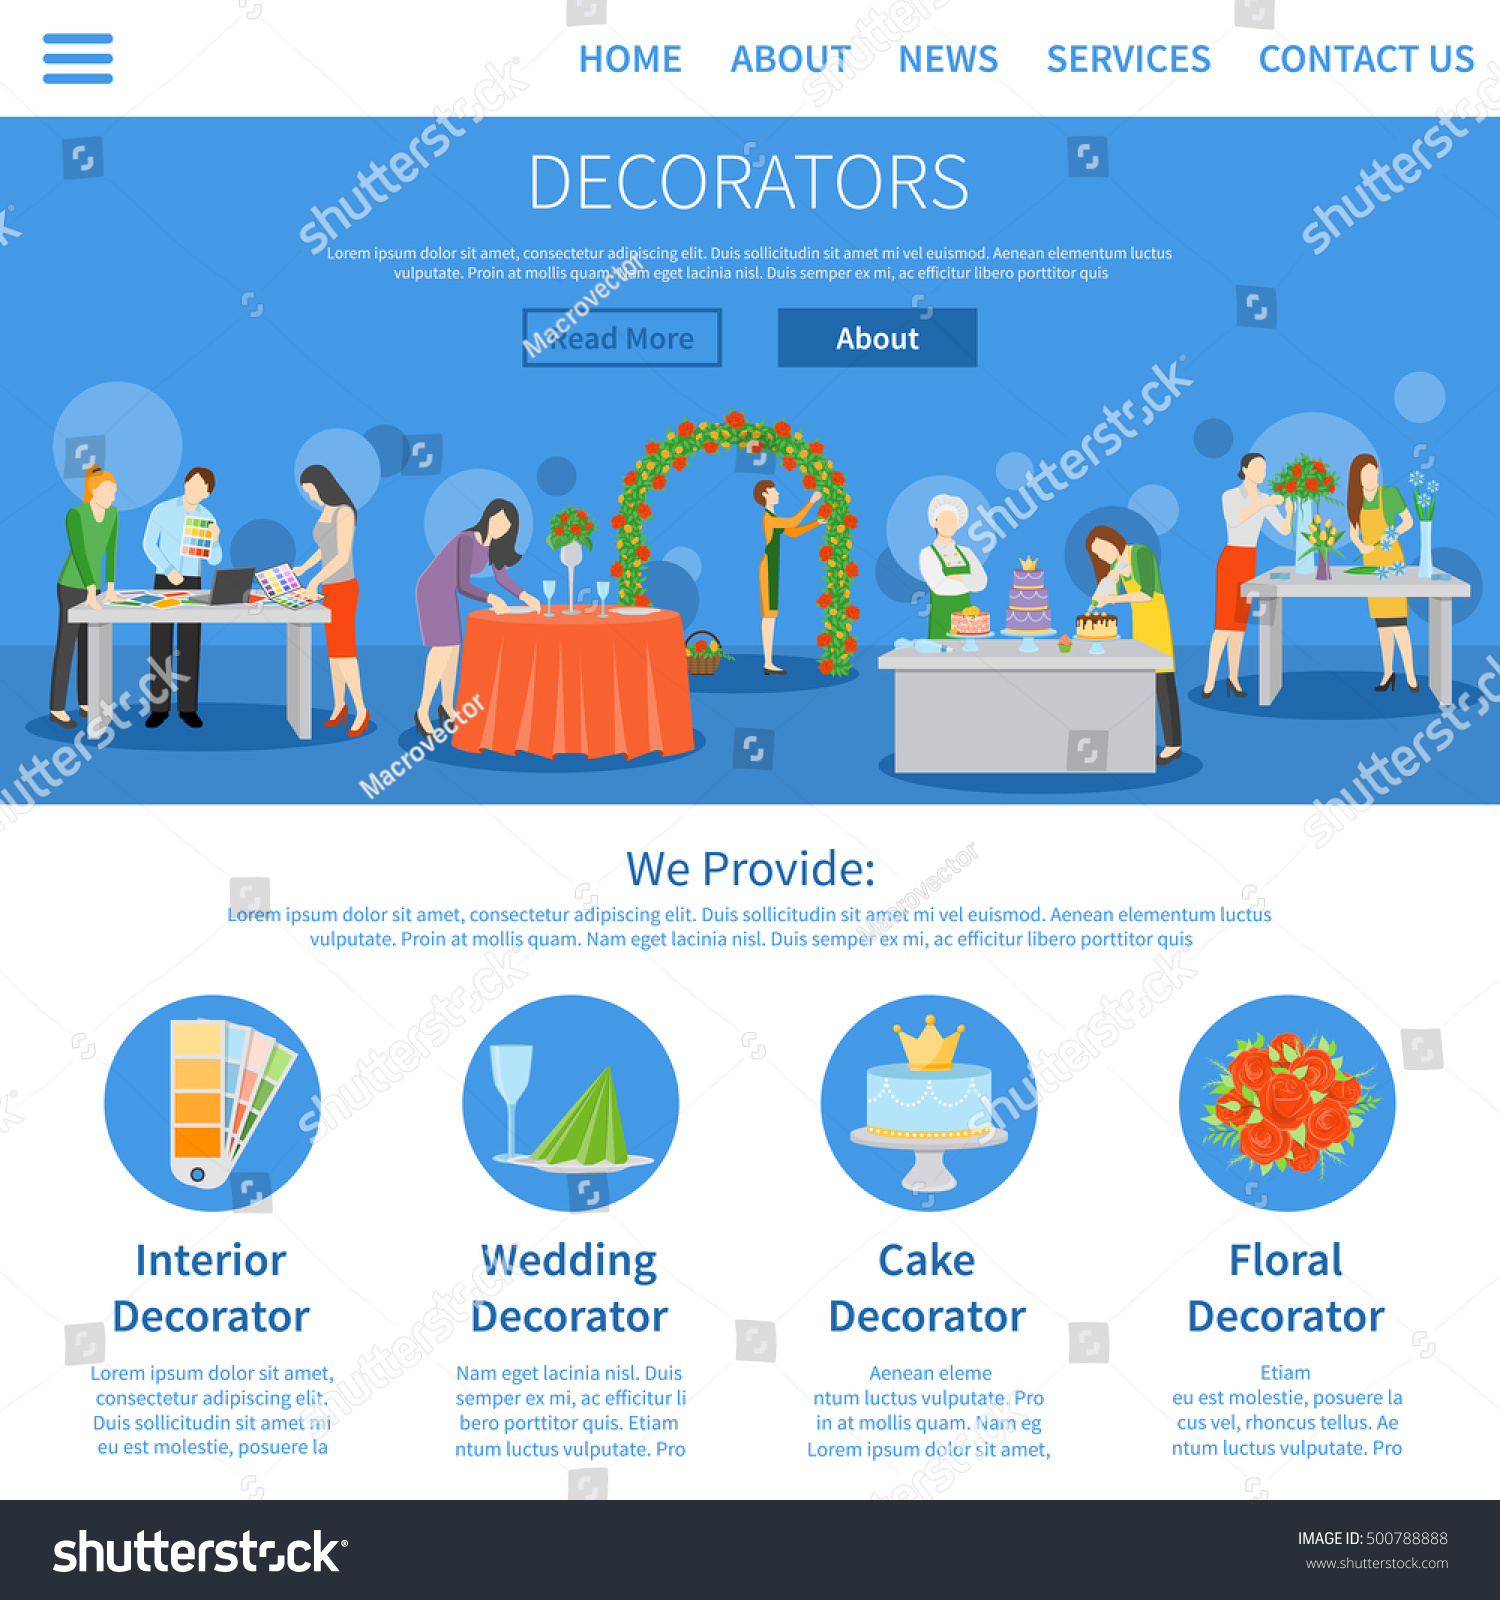 Interior design home page - Professional Decorators Services For Weddings Parties Interior Design One Page Online Information Flat Homepage Abstract Vector